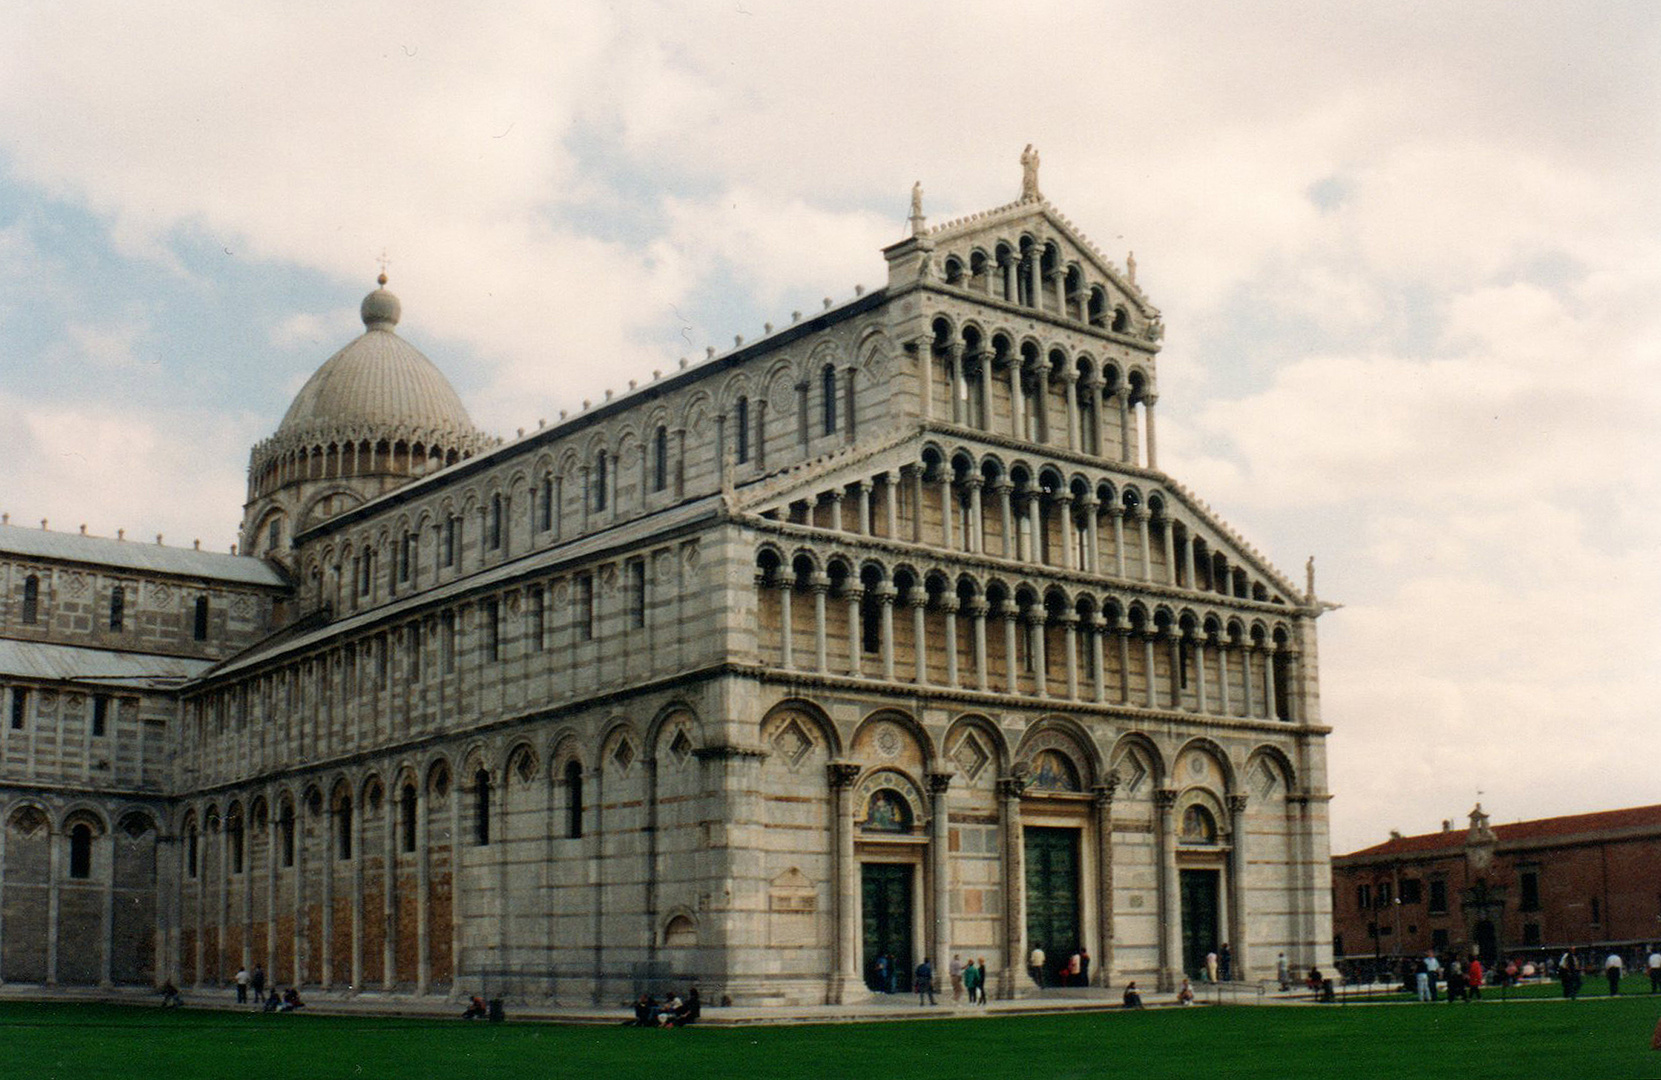 PISA - THE CATHEDRAL